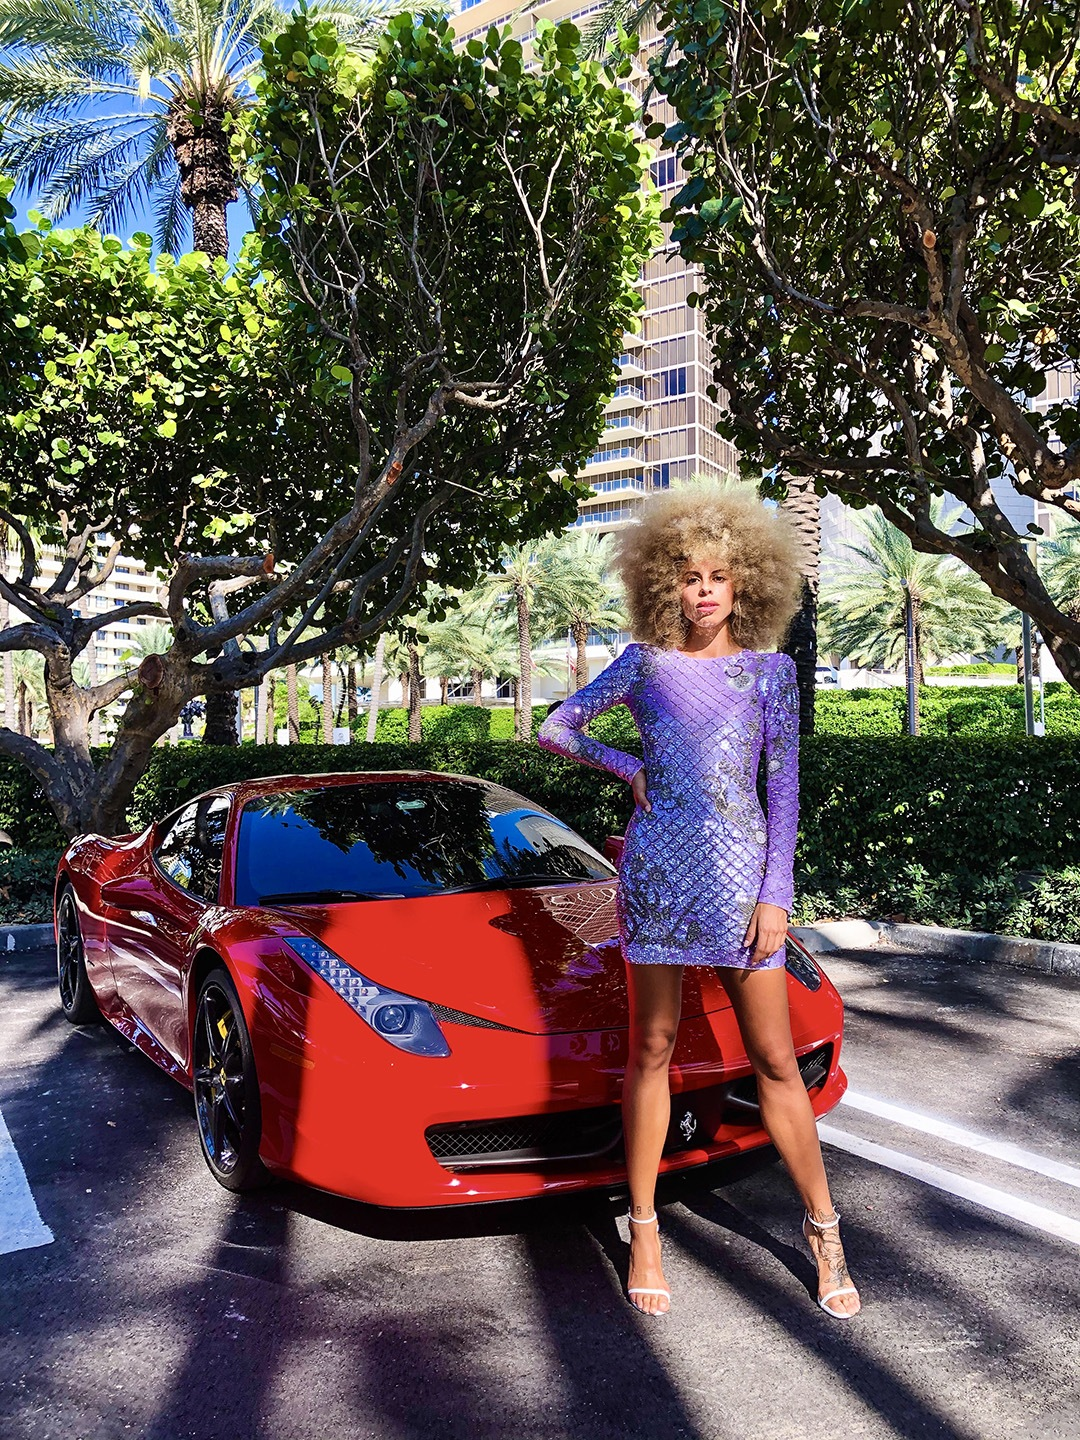 Balmain model in front of red Ferrari